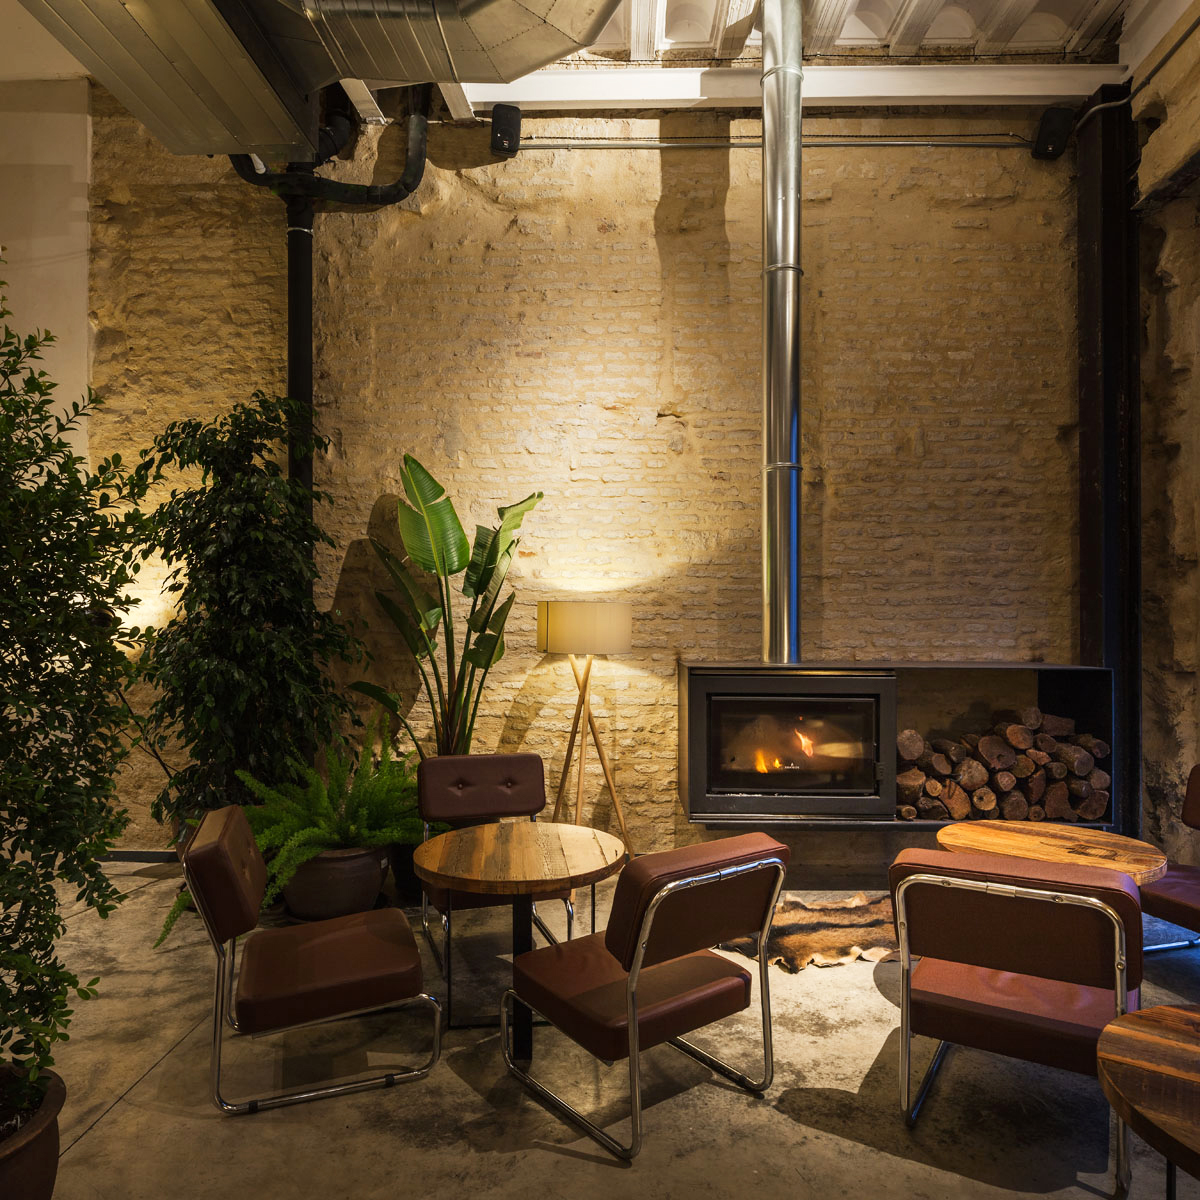 Donaire Arquitectos restores an old house into a new restaurant